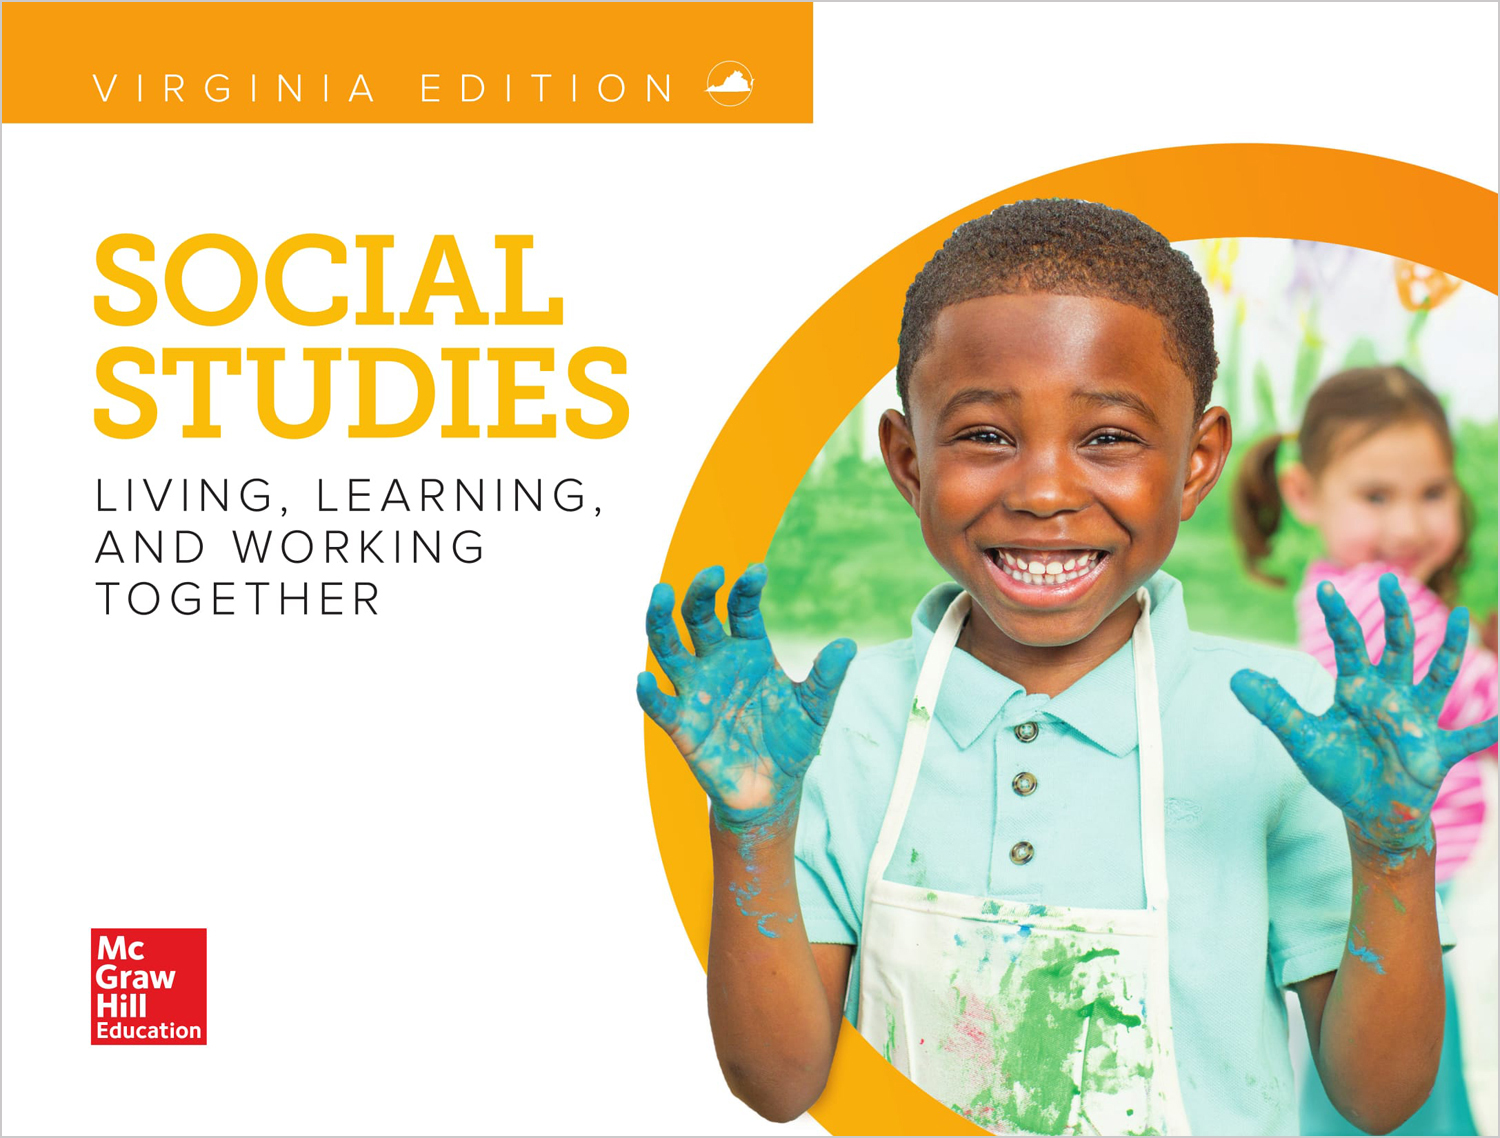 Social Studies Living, Learning, and Working Together cover